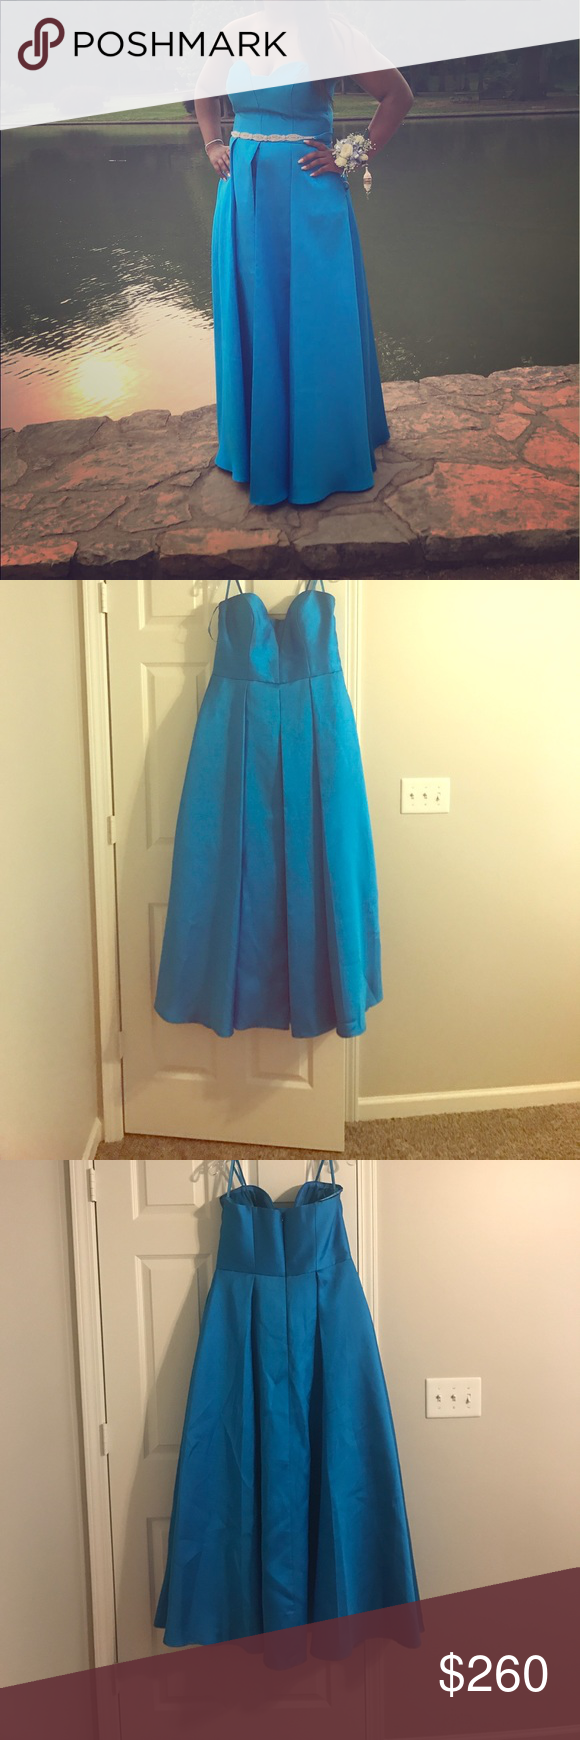 Beautiful blue prom dress for sale! Blue strapless prom dress worn once for sale. It is kind of made like a ball gown but not as poofy. The dress opens in the front as you can see in the picture. It does come with straps if you don't want to wear it strapless. I had it altered to fit me from a size 16 to about a 14 or 15. Please feel free to contact me with any question. mikado Dresses Prom